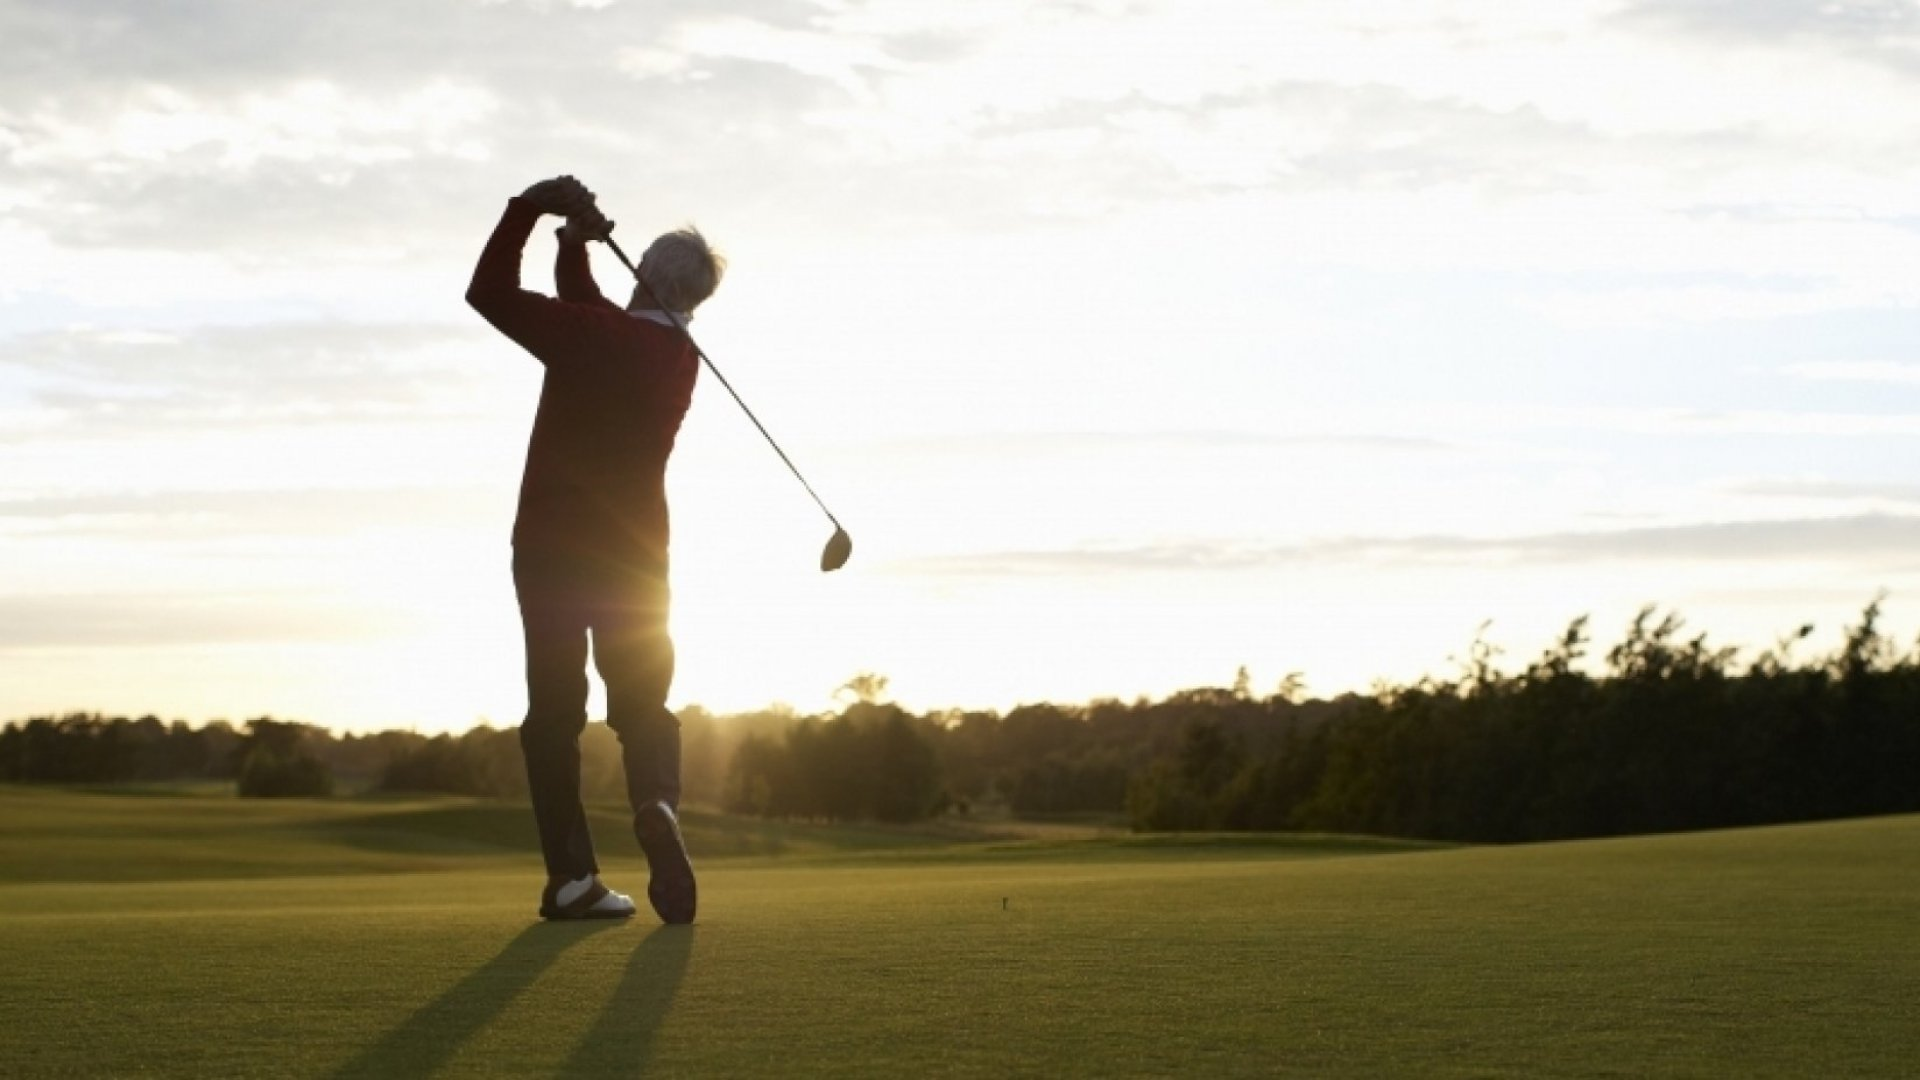 Save the Birdies: Golf Courses Deserve (Some) Environmental Tax Credit